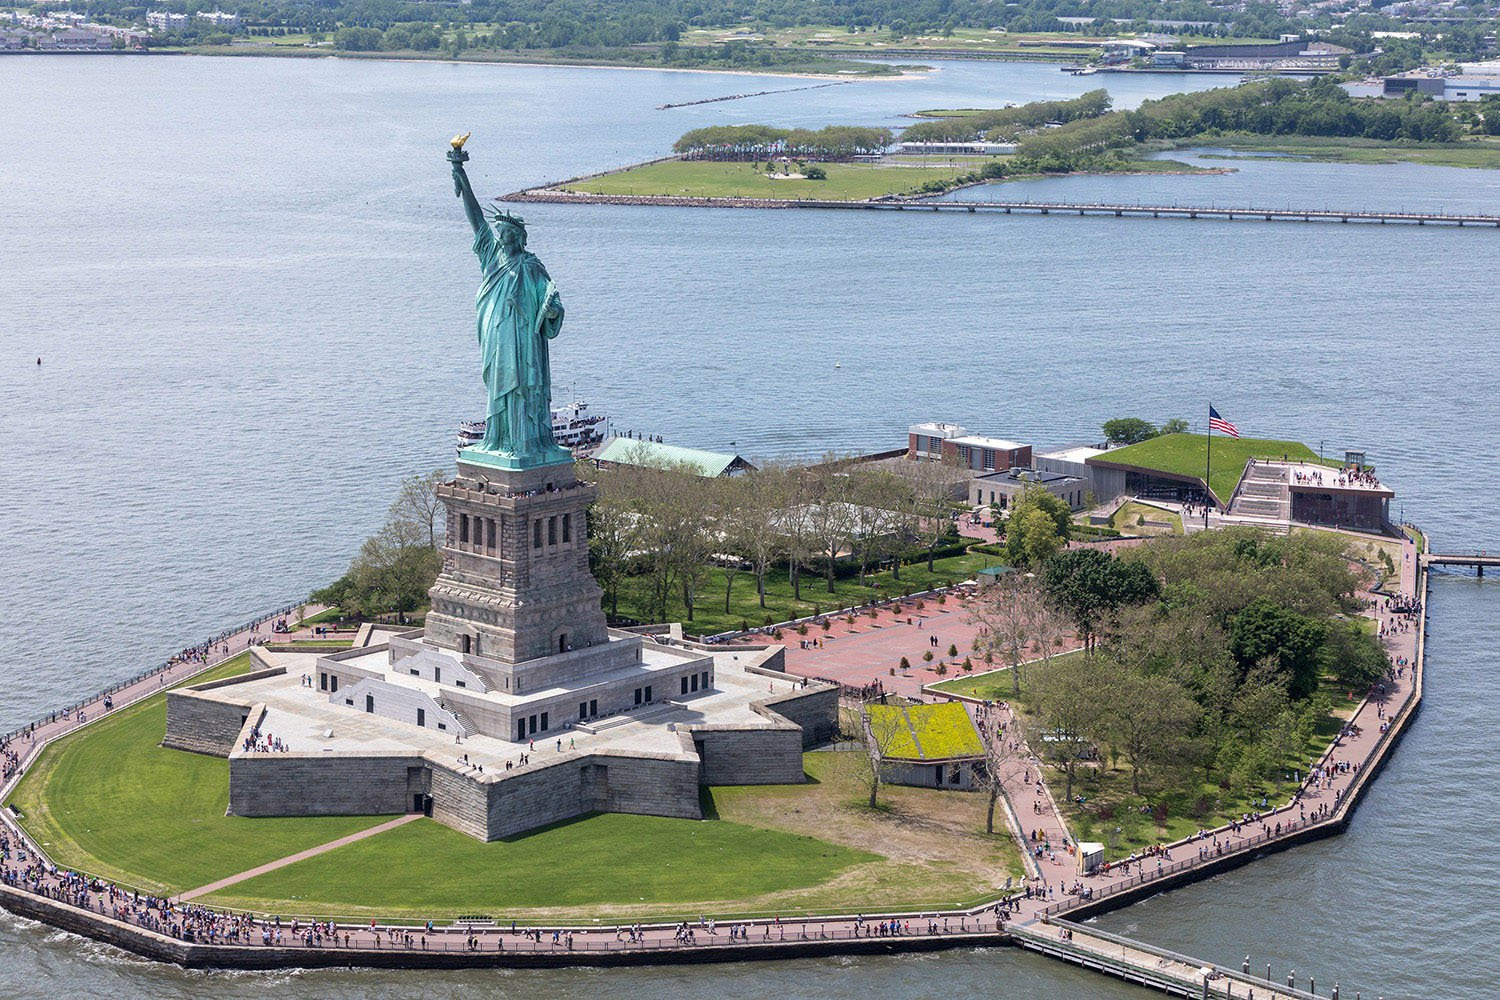 The museum and the Statue of Liberty—located on opposite ends of Liberty Island. Copyright Iwan Baan